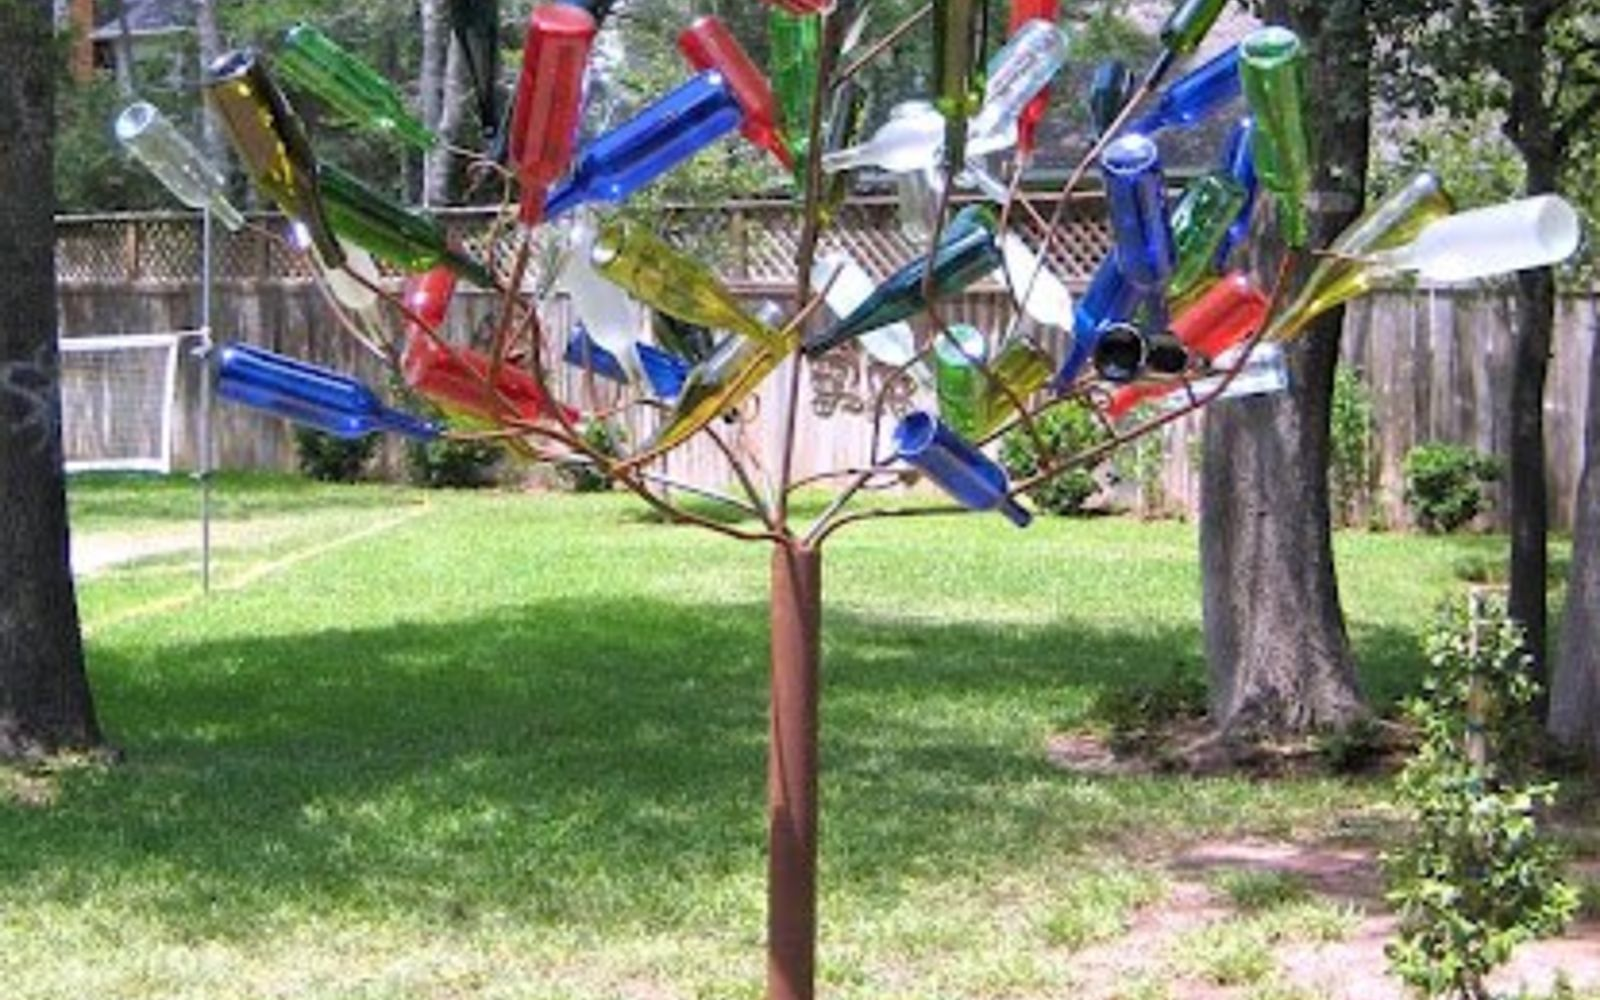 s 15 incredible backyard ideas using empty wine bottles, gardening, outdoor living, repurposing upcycling, Make a bottle tree with stakes in the garden